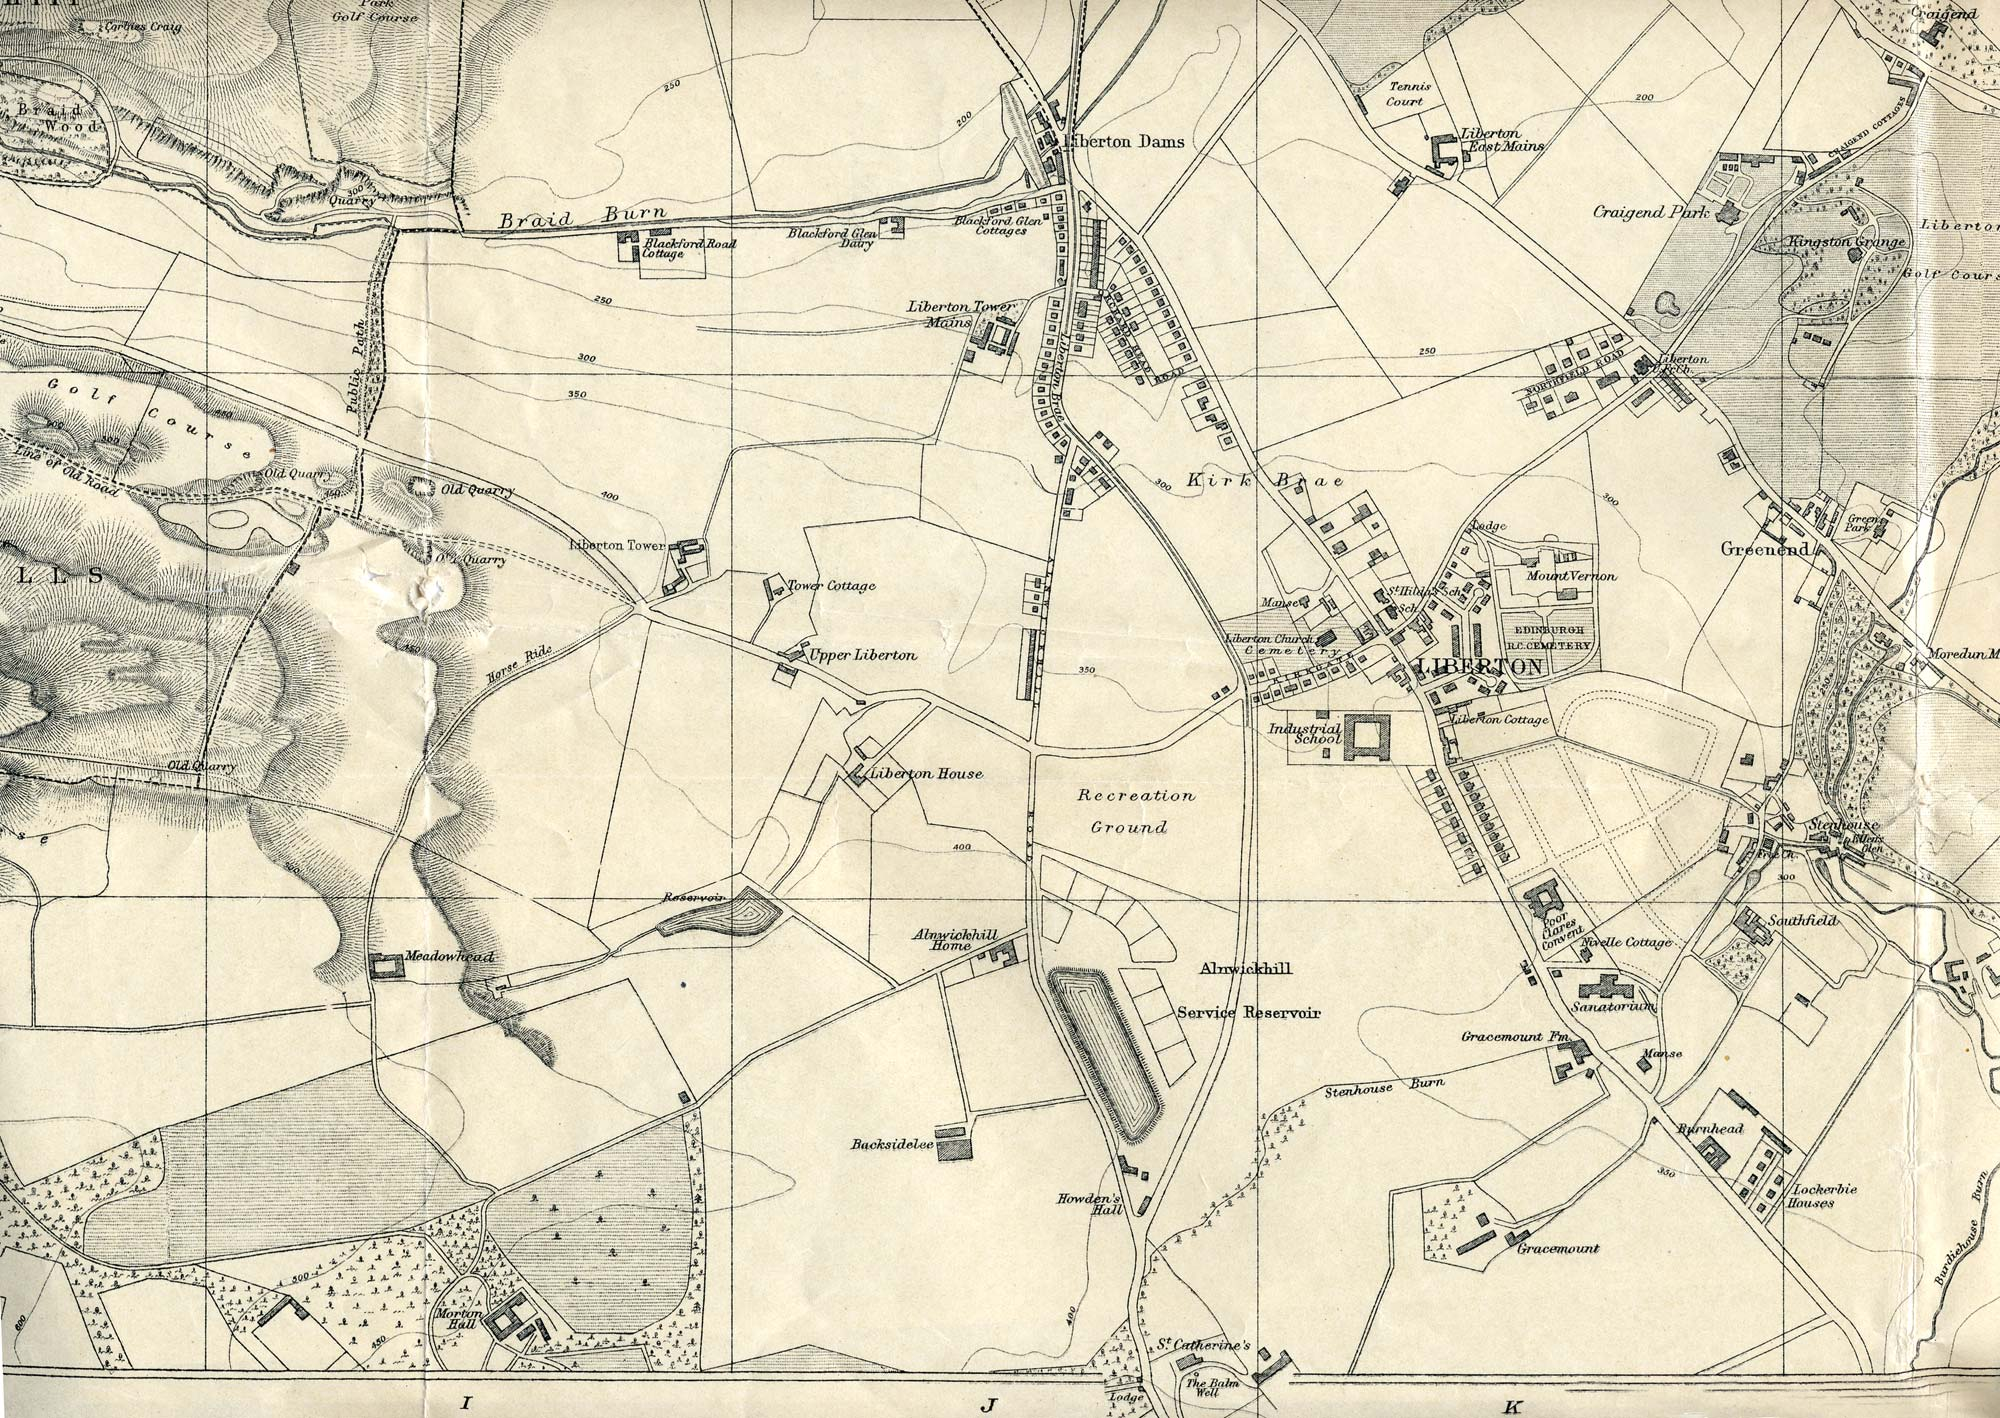 Edinburgh and Leith map, 1925  -  Liberton section  -  Enlarged